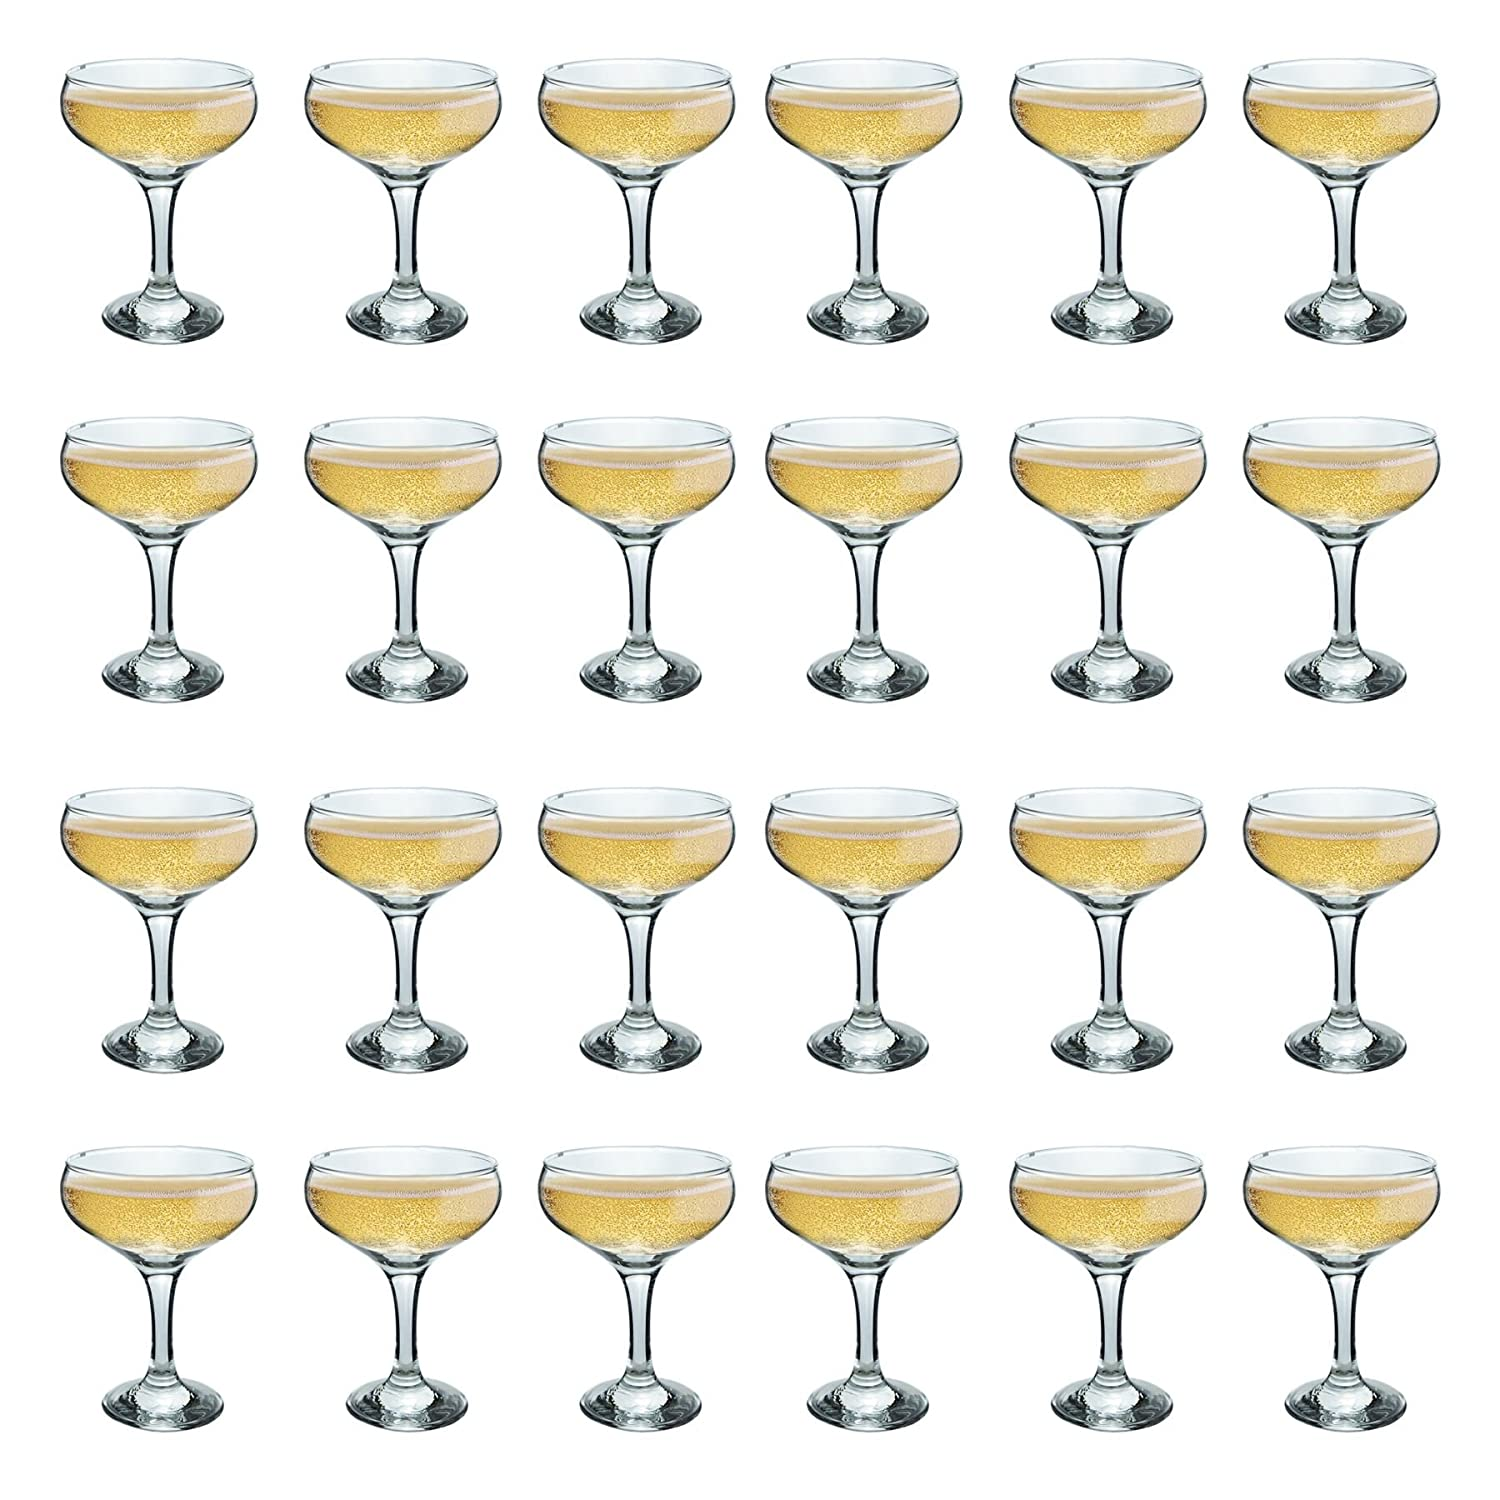 Rink Drink Champagne Glasses Vintage Coupe Glass Saucer – 200ml – Pack of 24